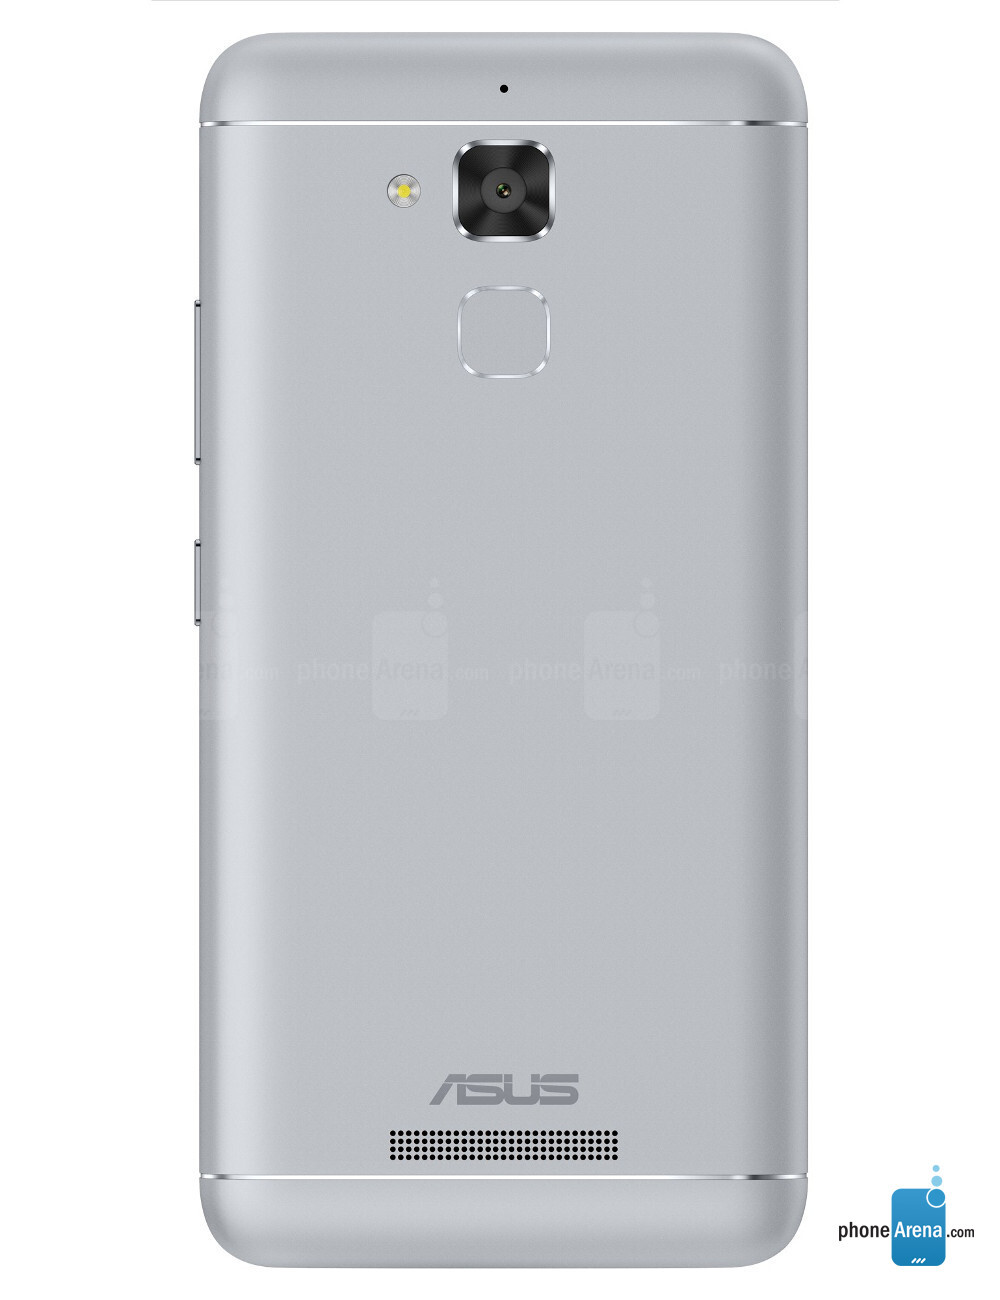 asus zenfone 3 max specs. Black Bedroom Furniture Sets. Home Design Ideas